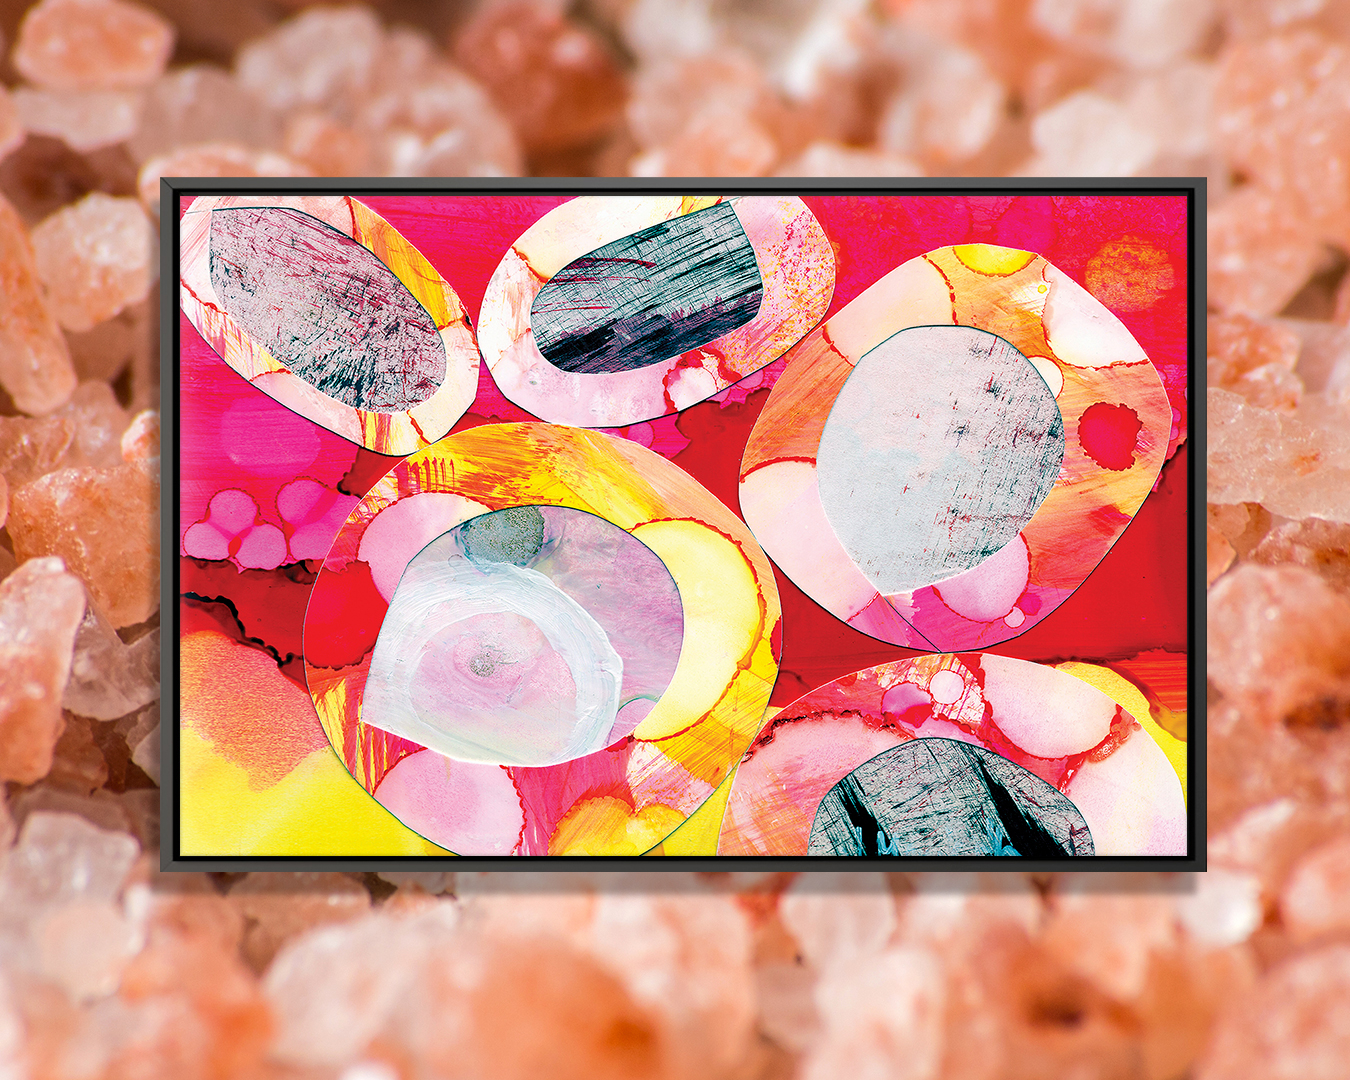 Candy by Jane Monteith shows a cluster of multi-colored rocks in pink, orange, red, yellow, white, and black